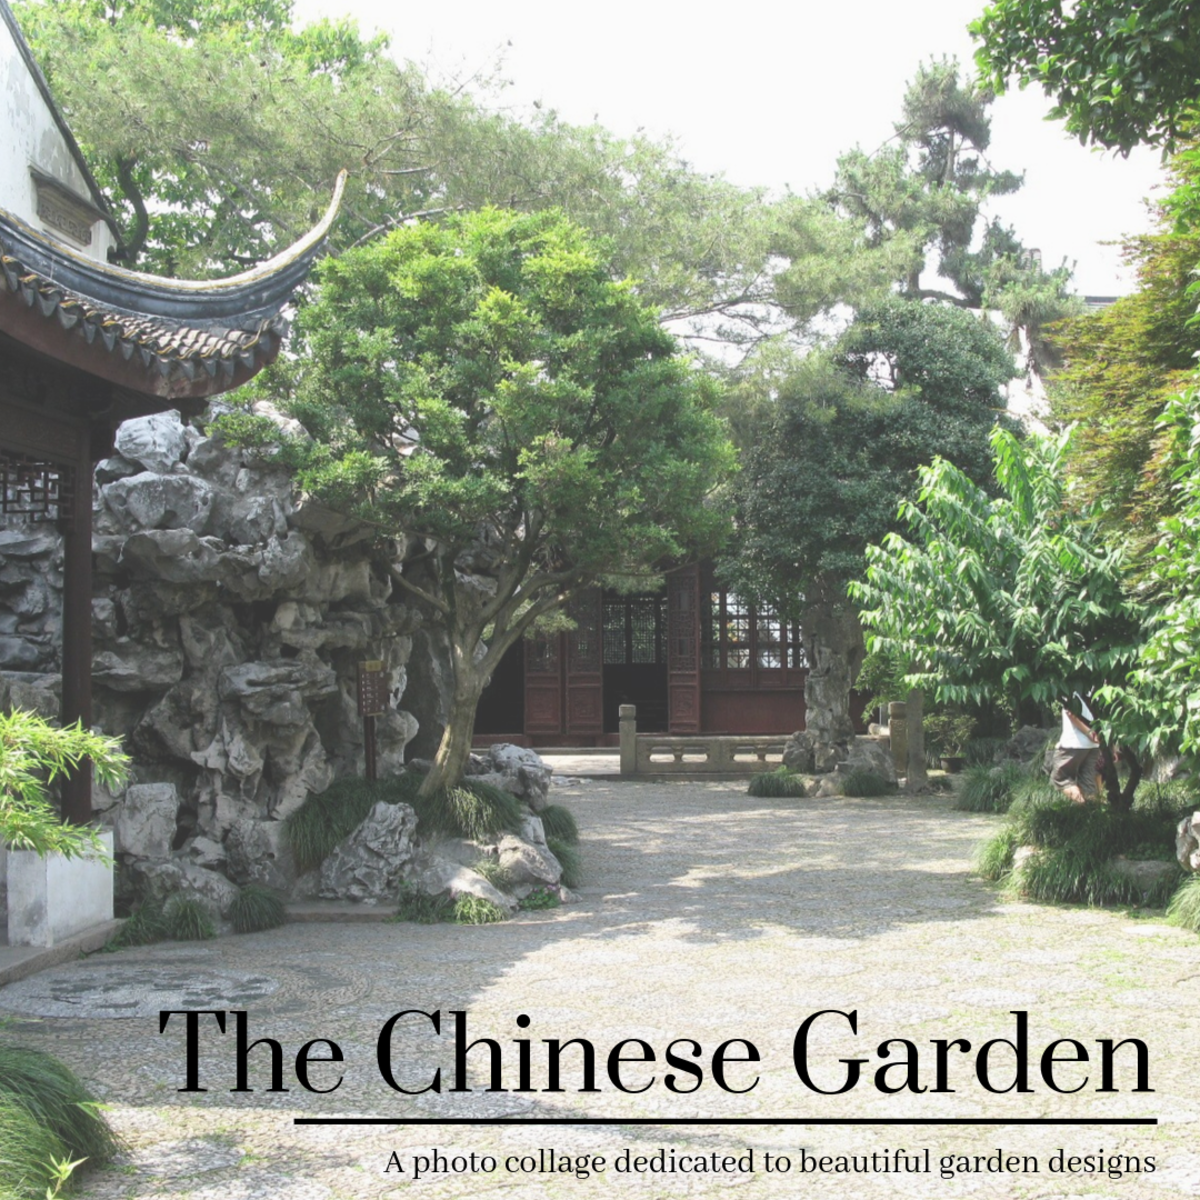 This photo collage showcases various common elements of Chinese garden design.